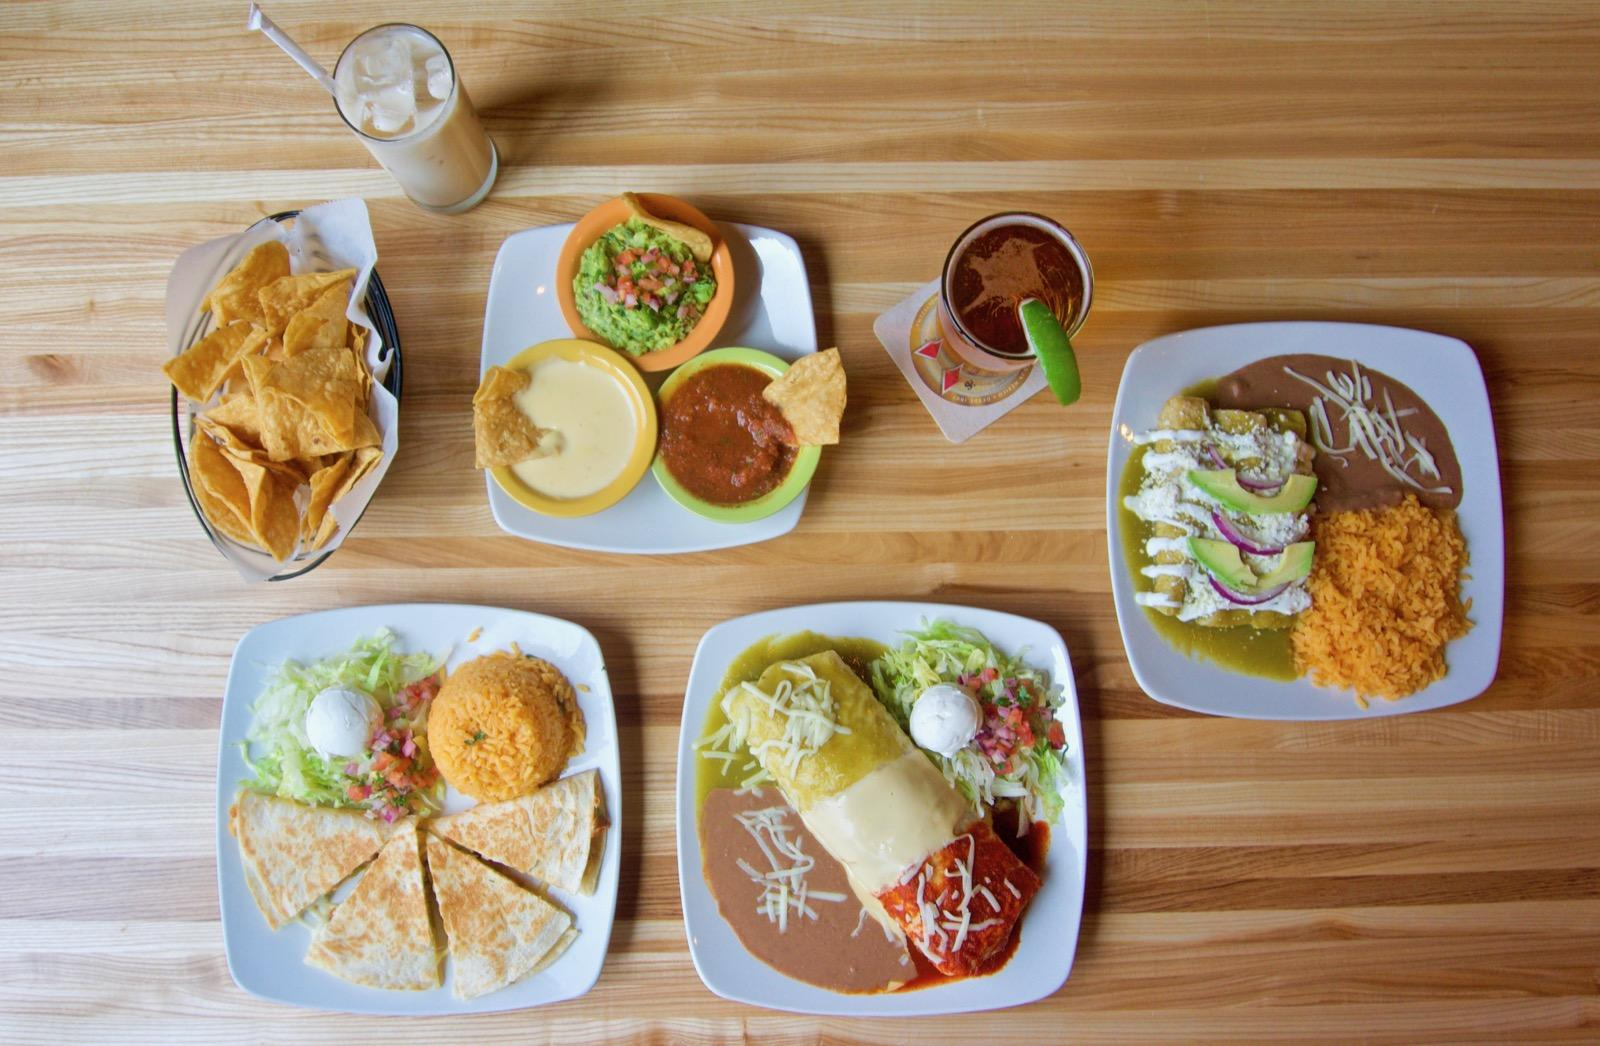 Chicken enchiladas, supreme chicken quesadilla, burrito Mexicano, chips with salsa, queso, and guacamole, Horchata, and a Dos Equis / Image: Brian Planalp // Published: 1.29.18<p></p>